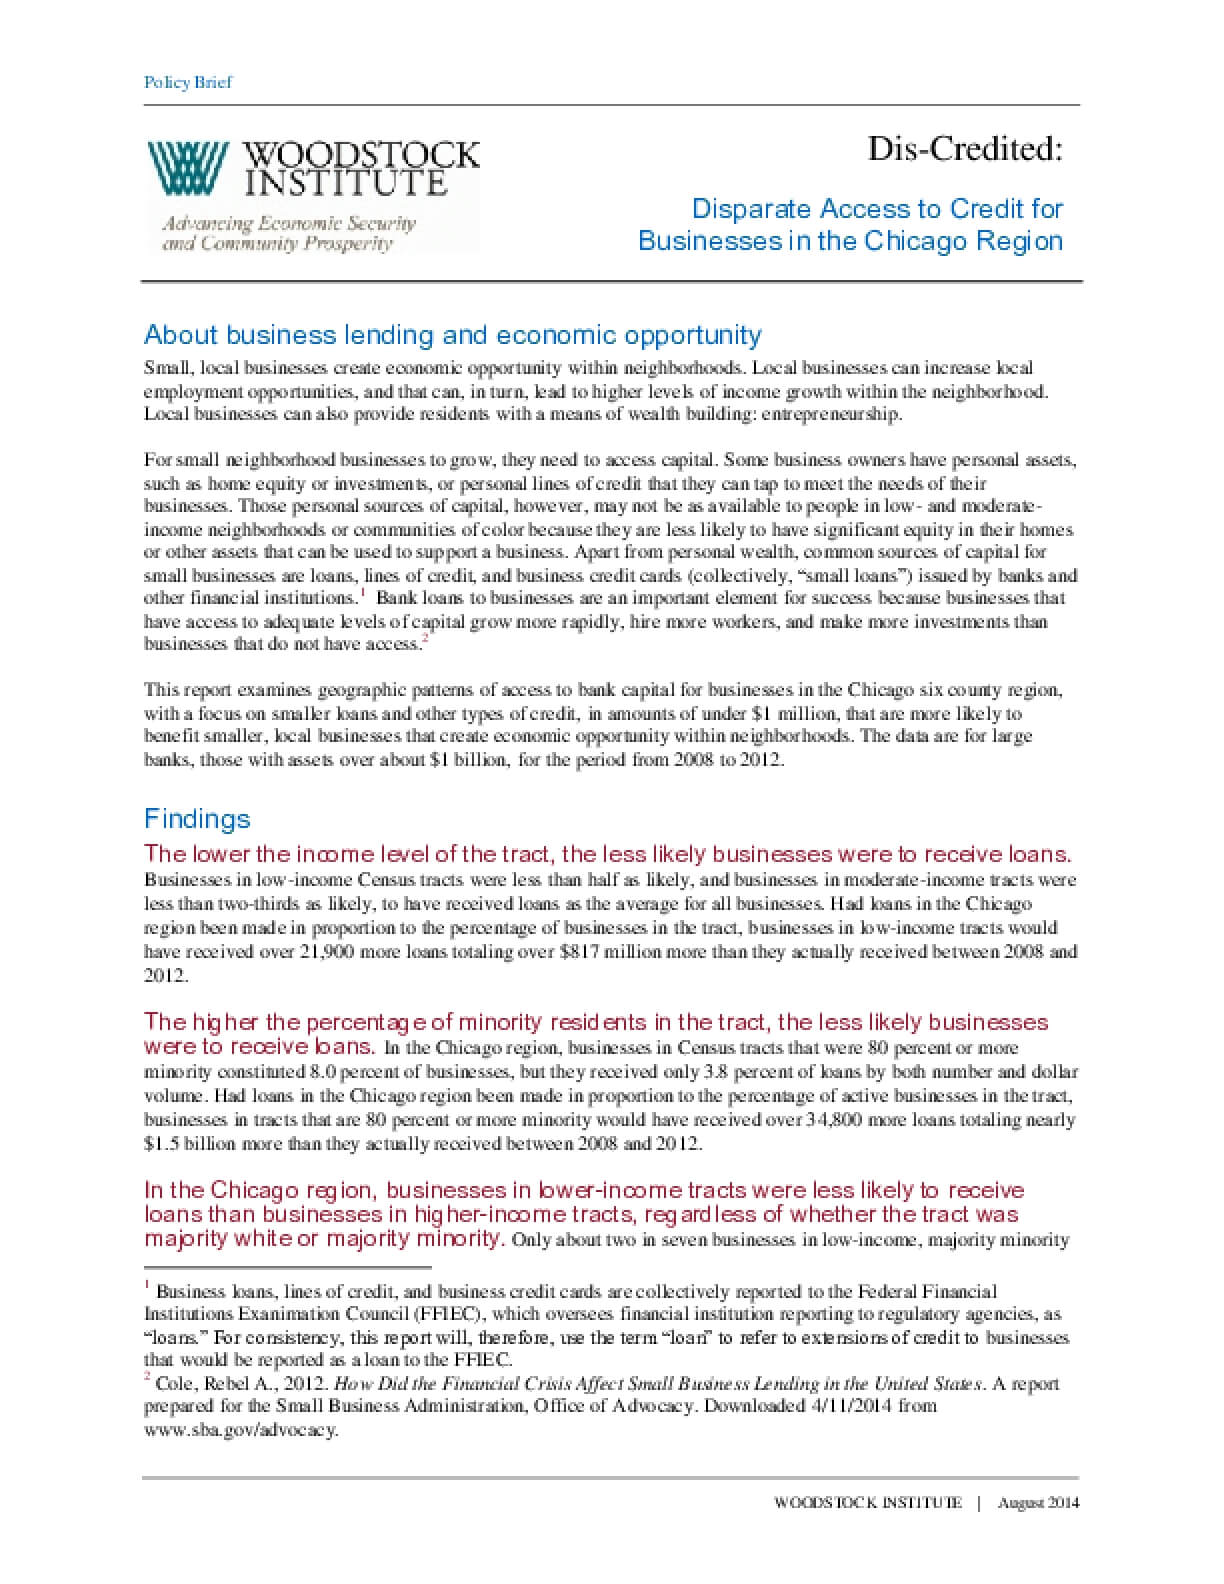 Policy Brief: Disparate Access to Credit for Businesses in the Chicago Region